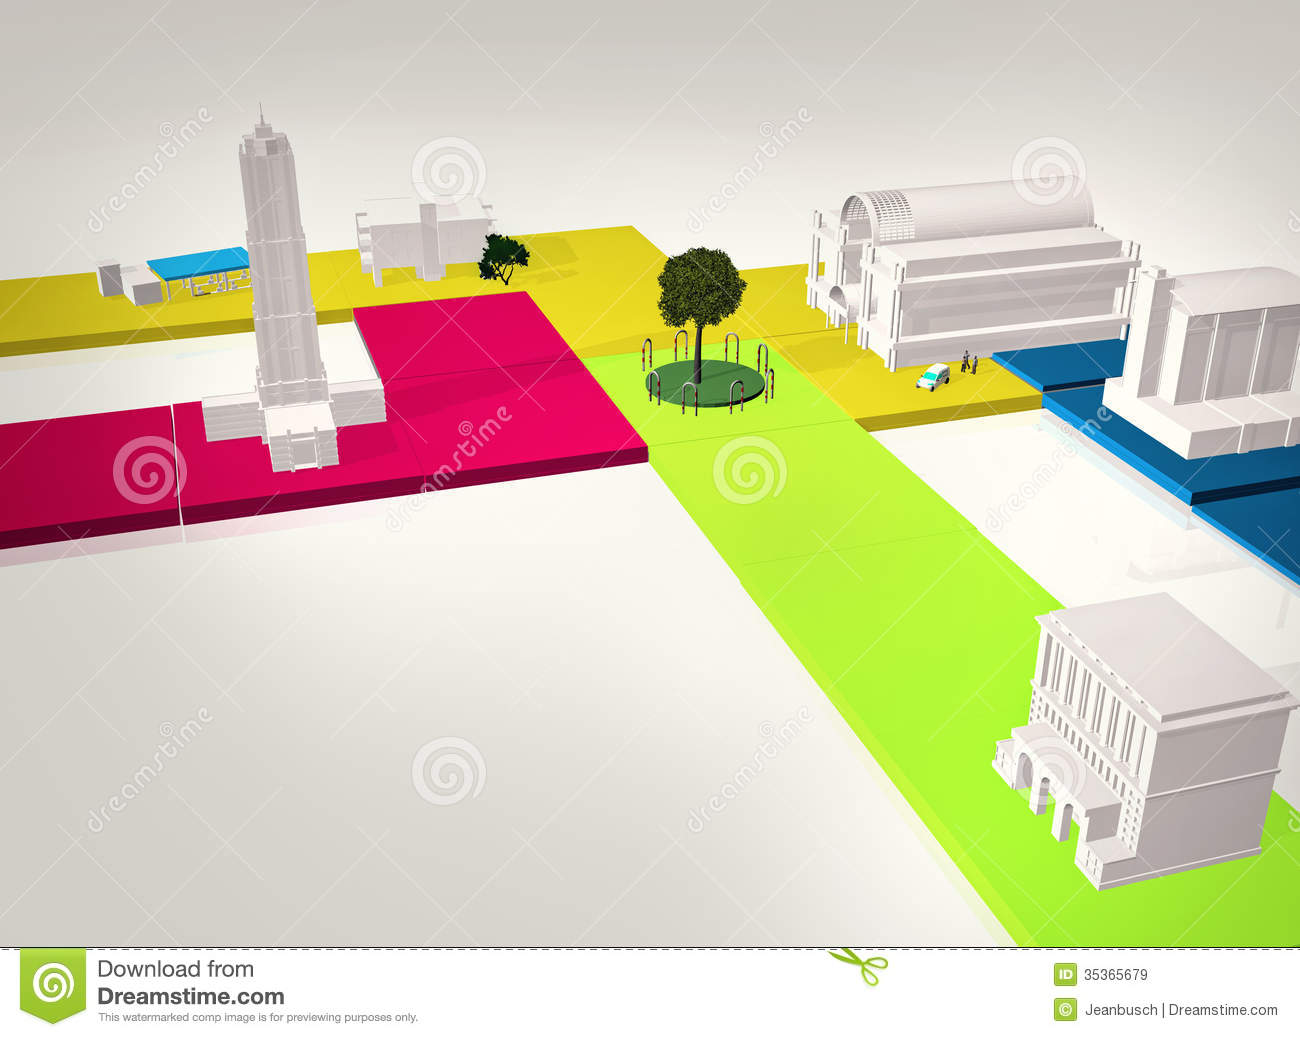 3D Model city stock illustration  Illustration of model - 35365679